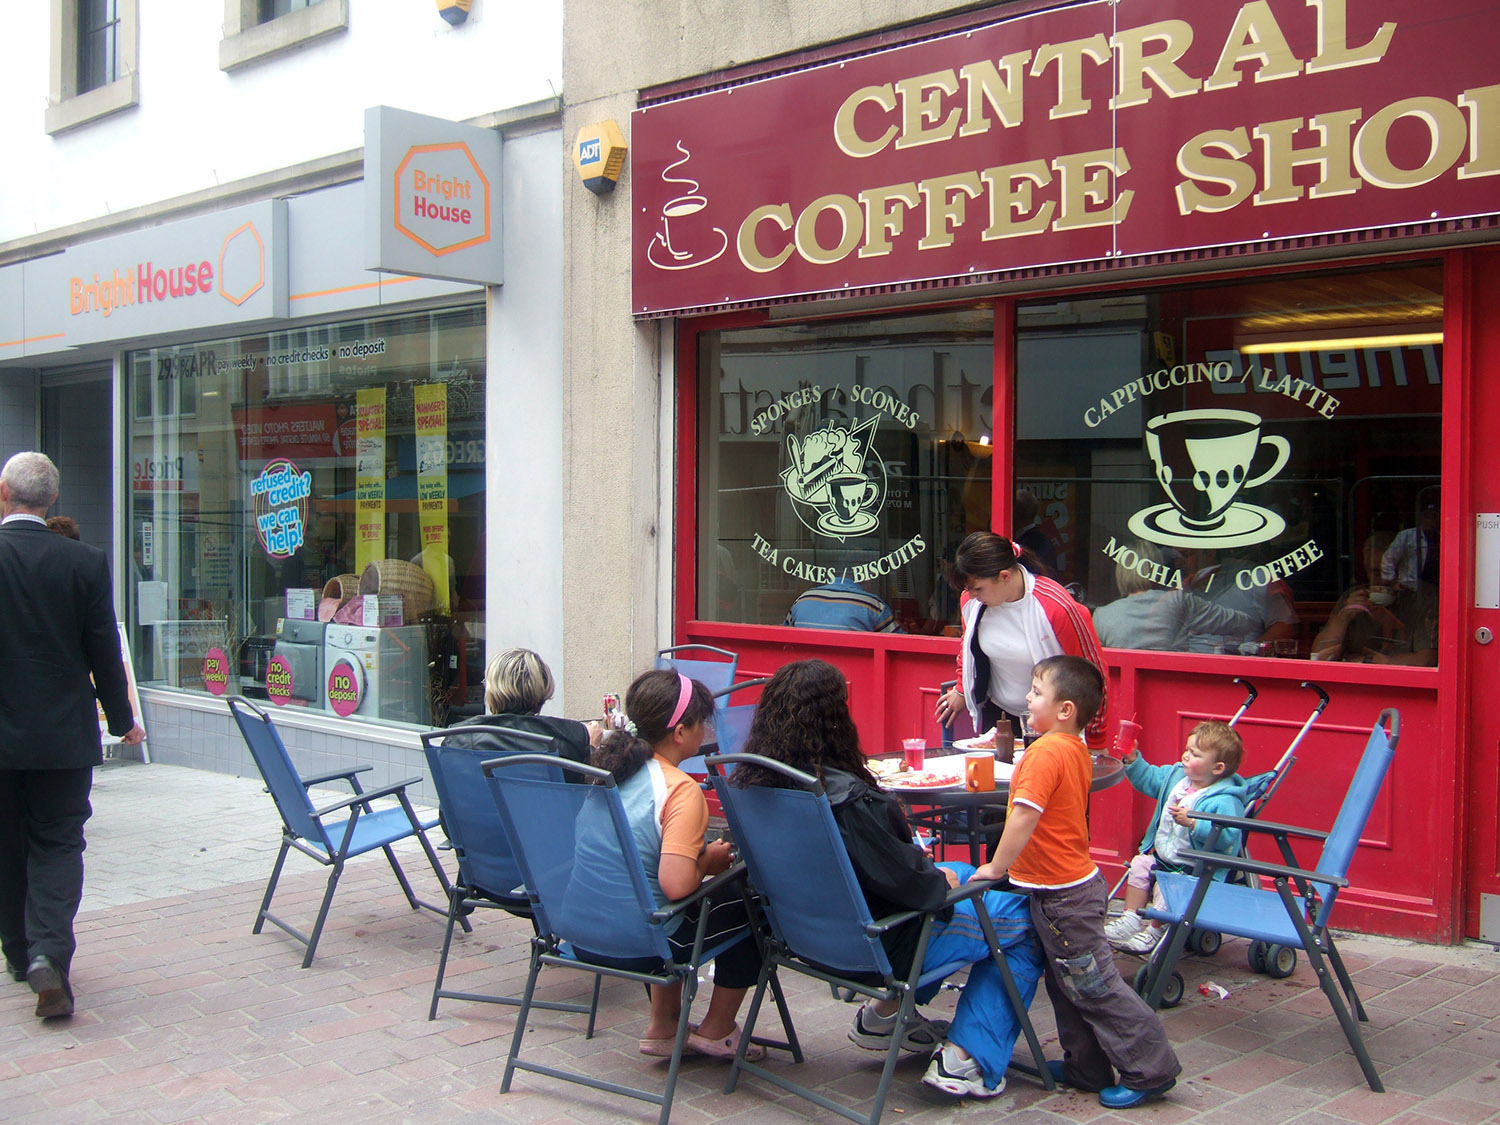 Places to meet in the street encourage conviviality